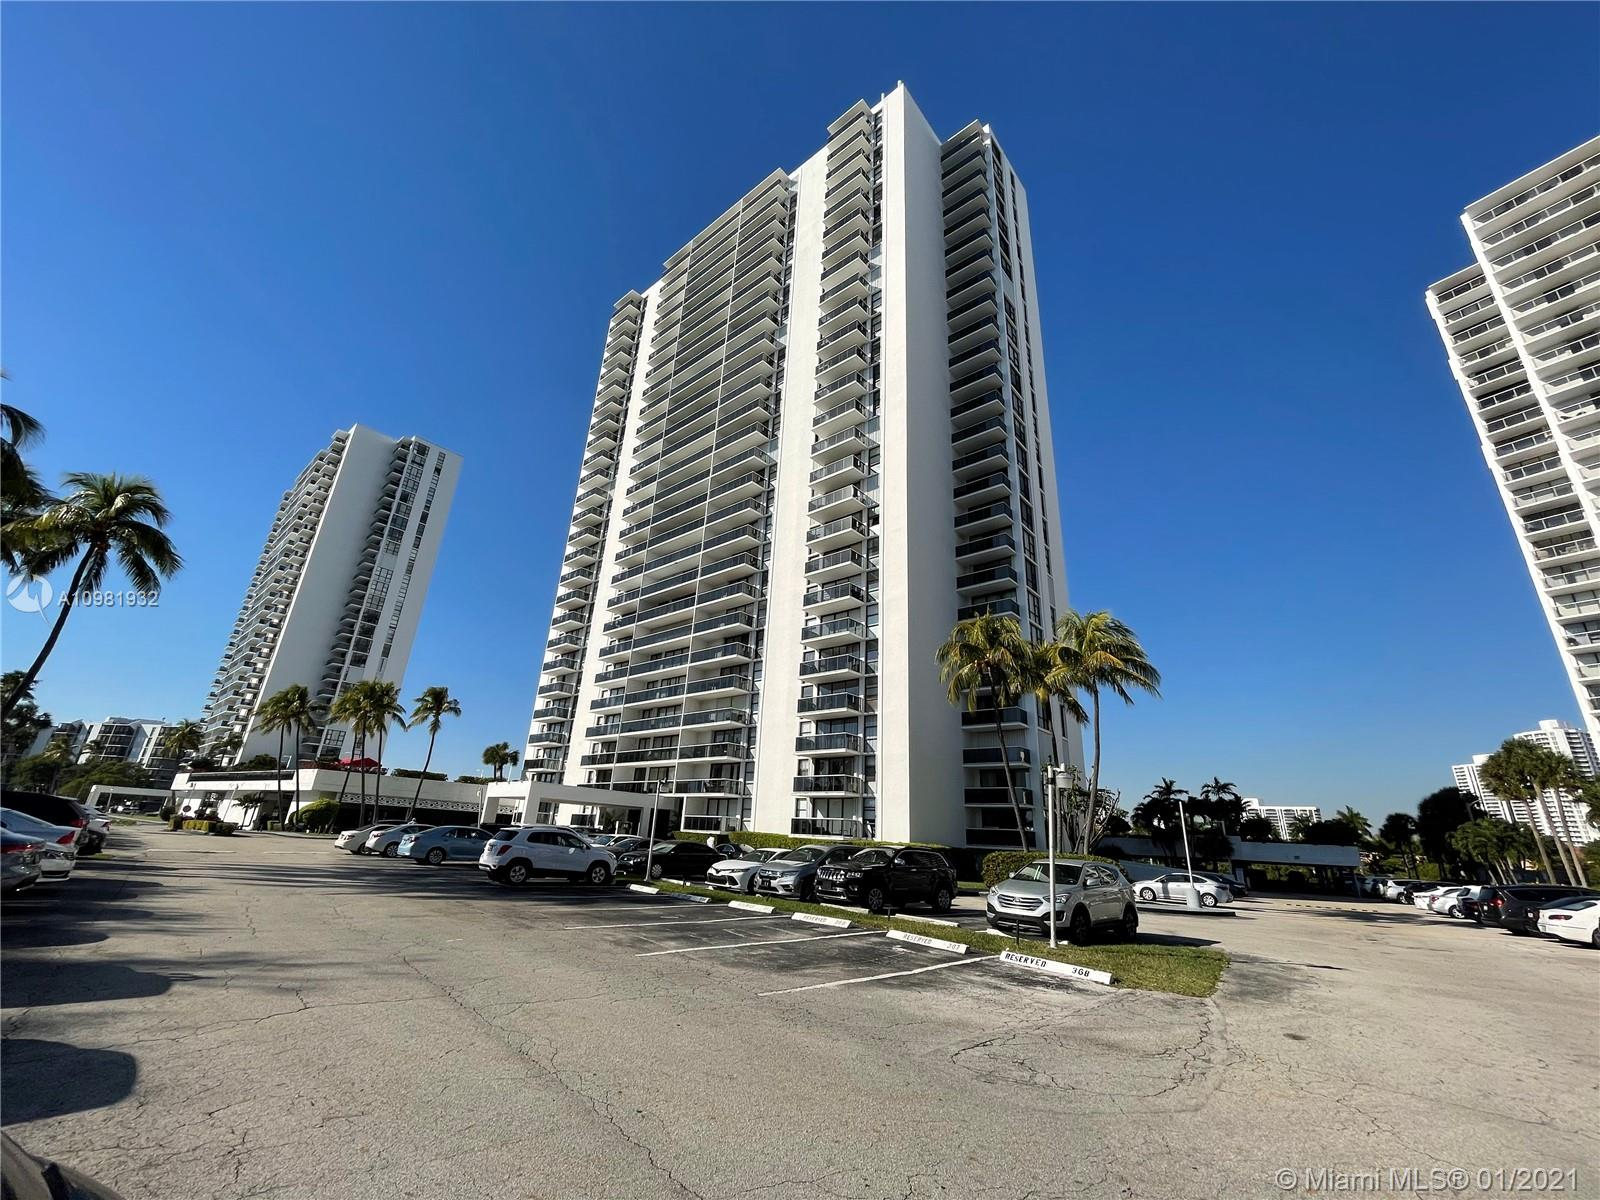 3625 N Country Club Dr #1210 For Sale A10981932, FL